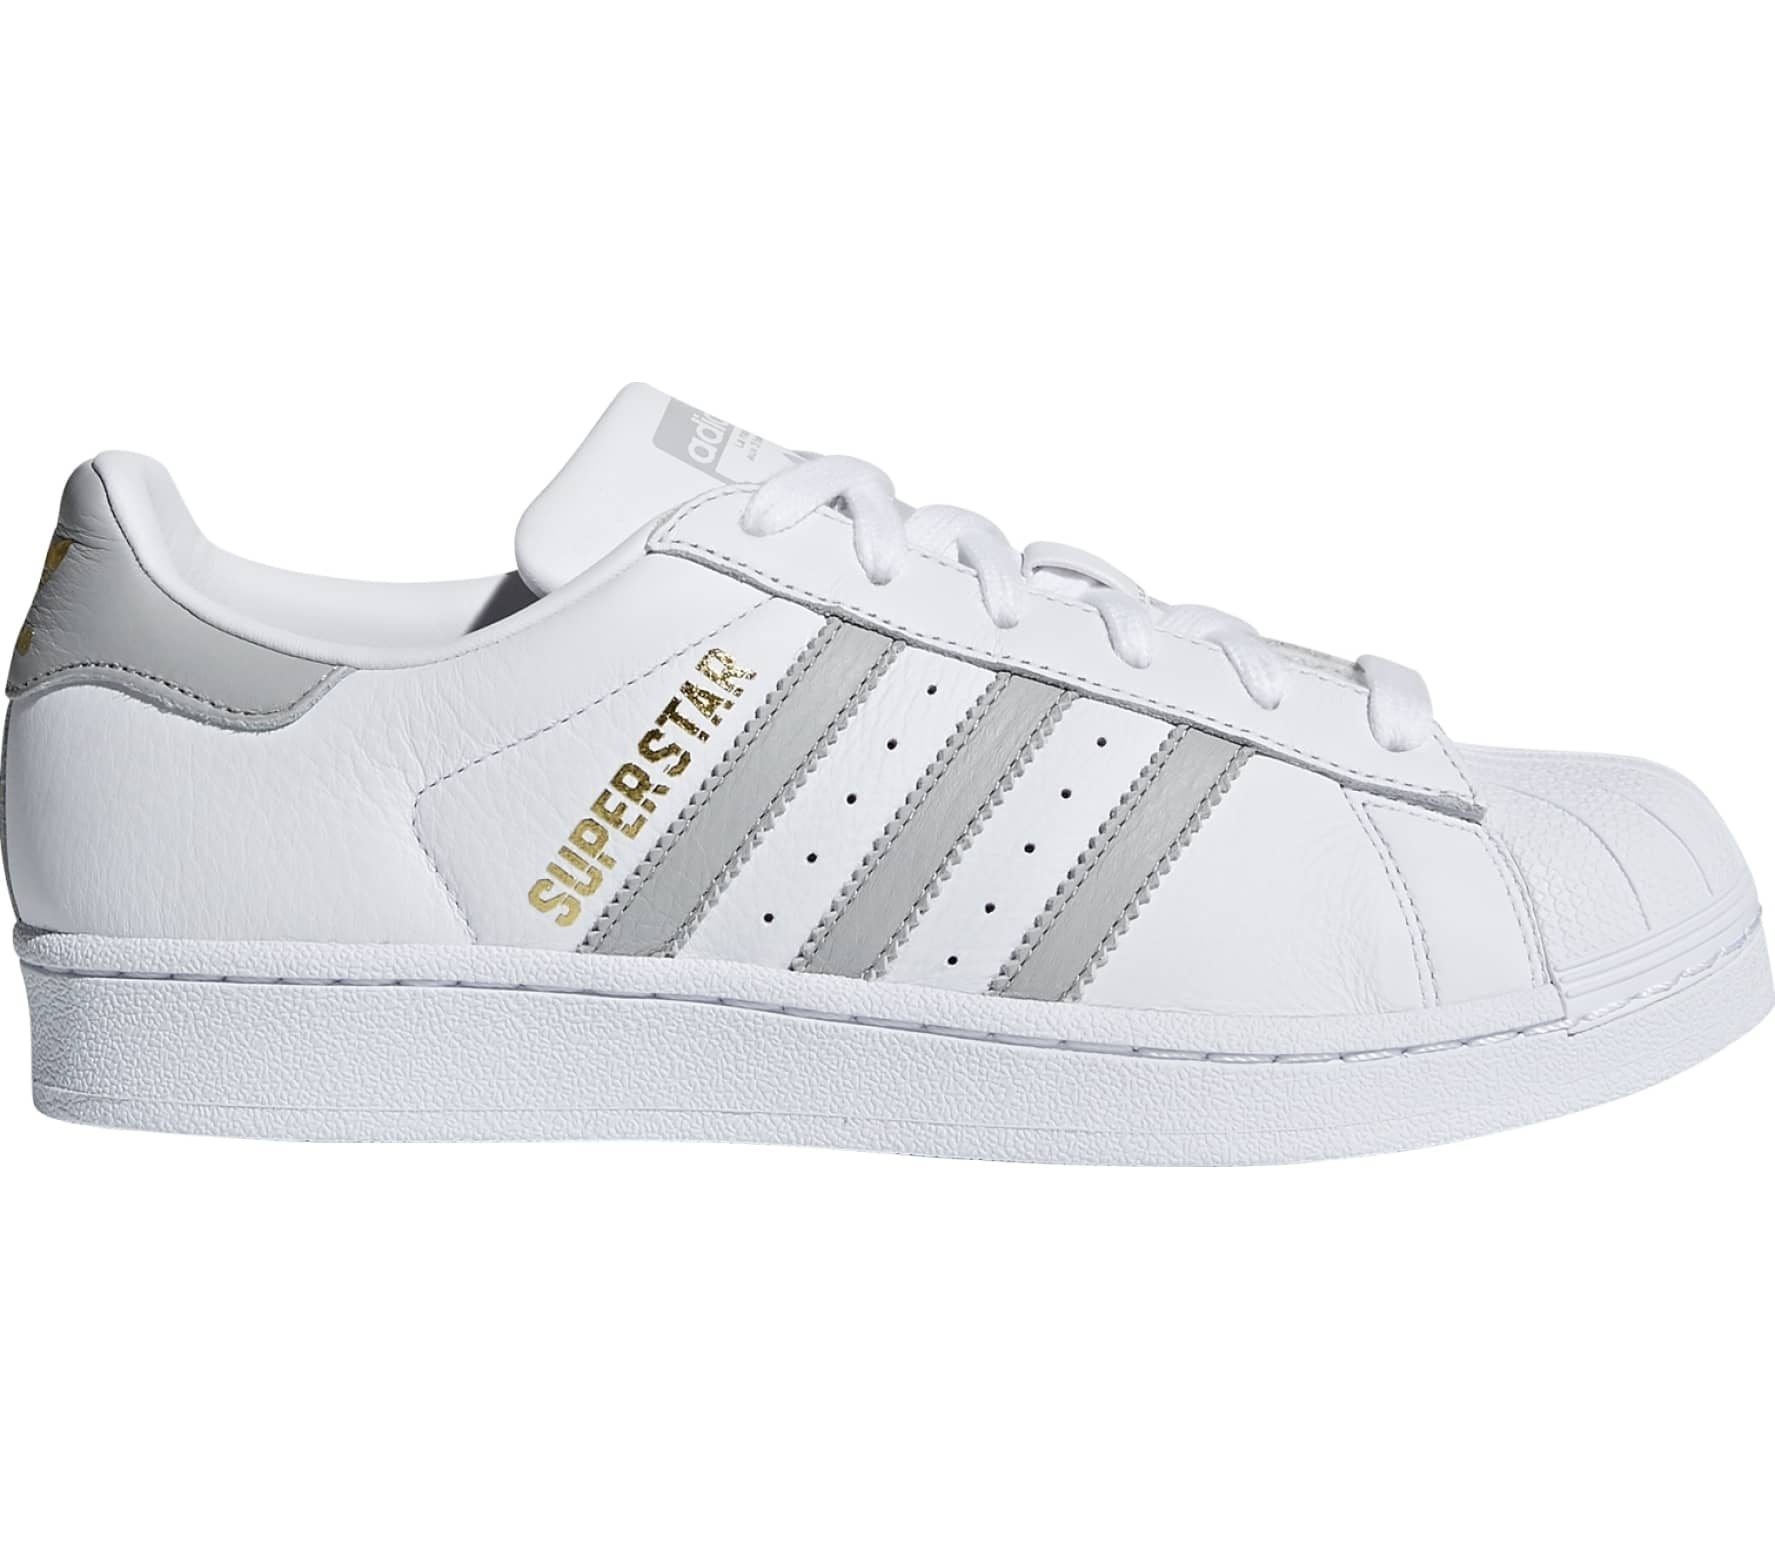 Originals sneakers adidas wit dames Superstar gfwxqwTvC